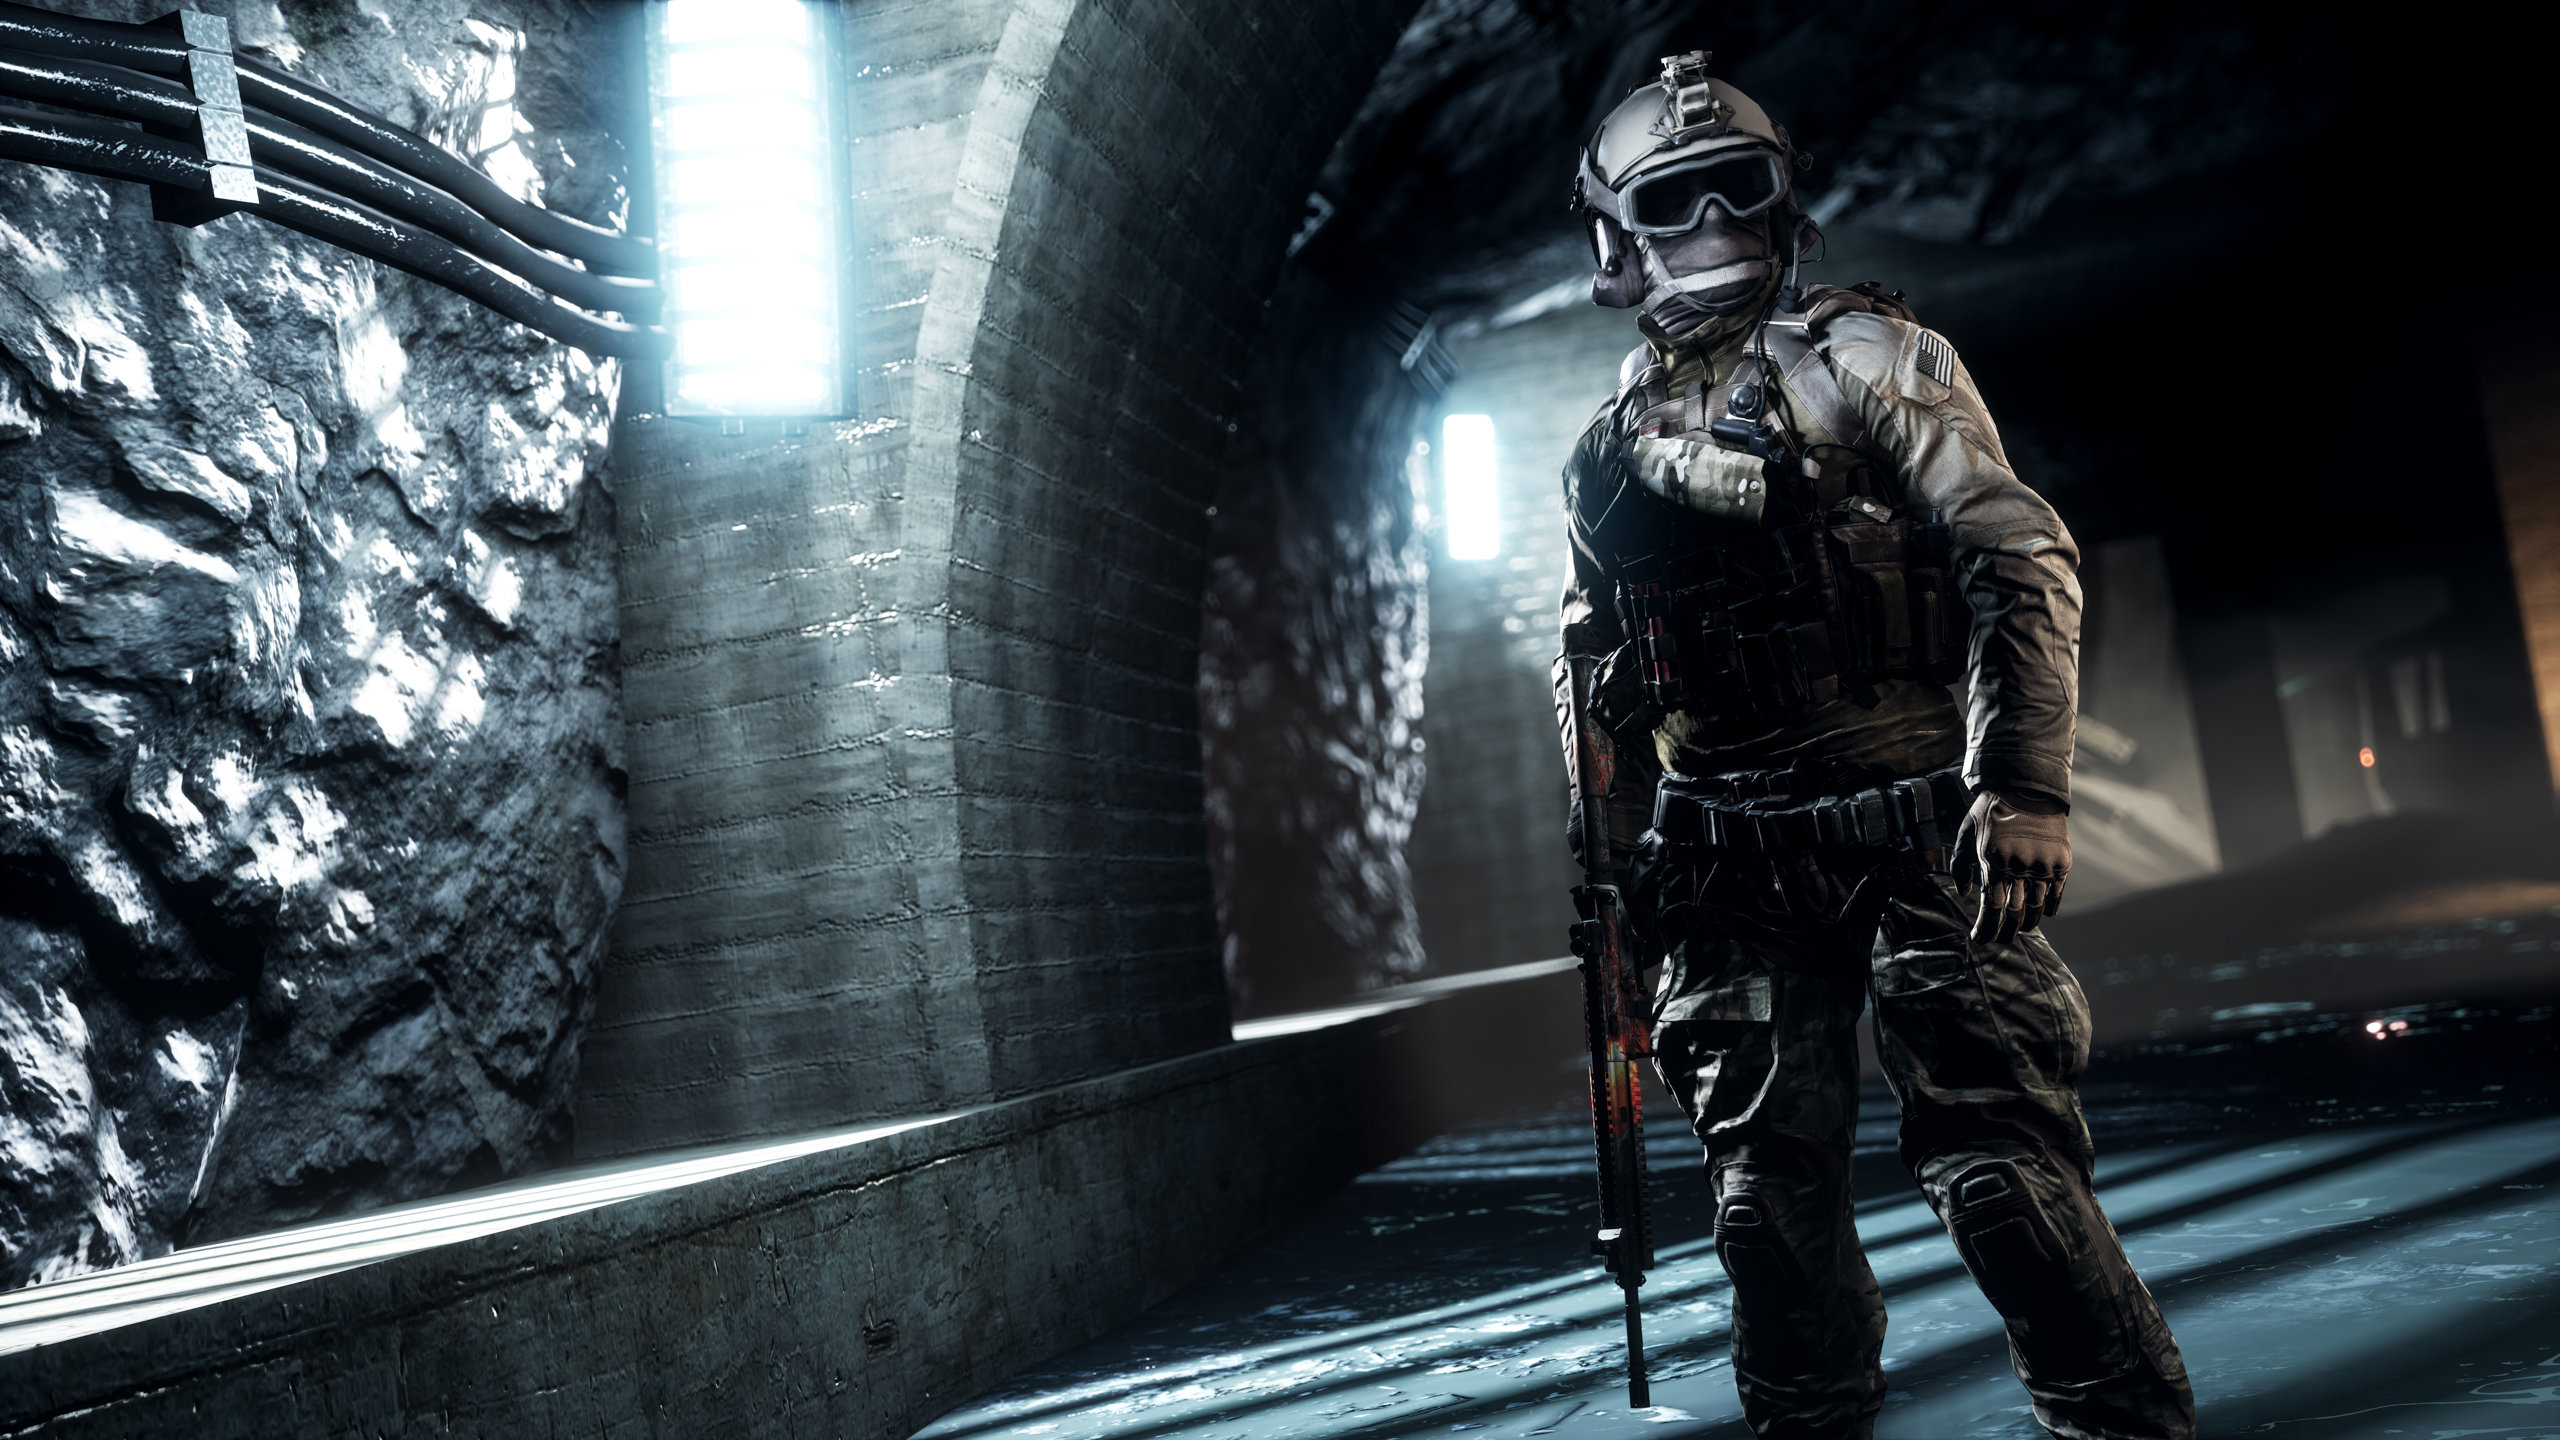 Download Hd 2560x1440 Battlefield 4 Desktop Wallpaper ID498272 For Free